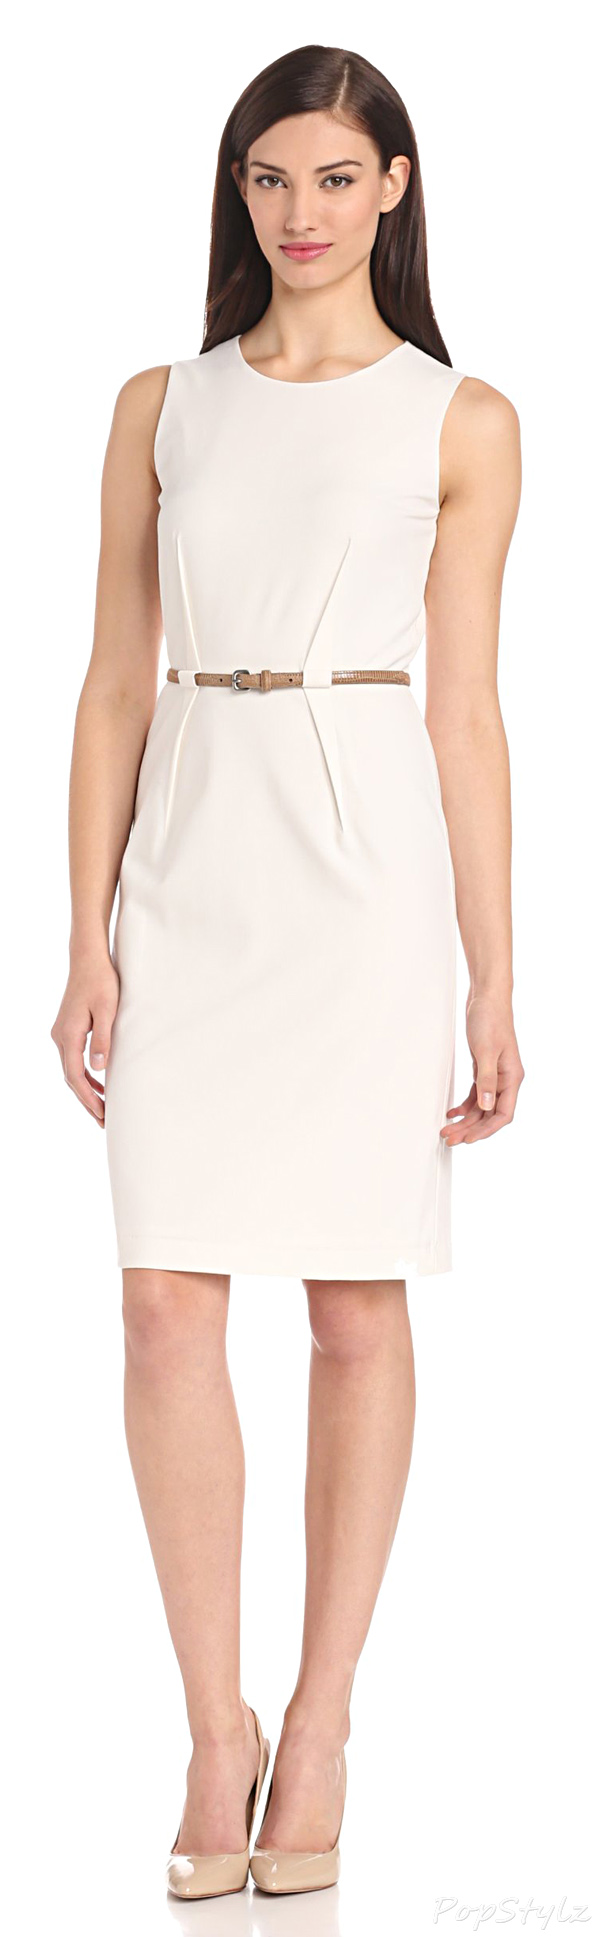 Calvin Klein Sleeveless Belted Suit Dress